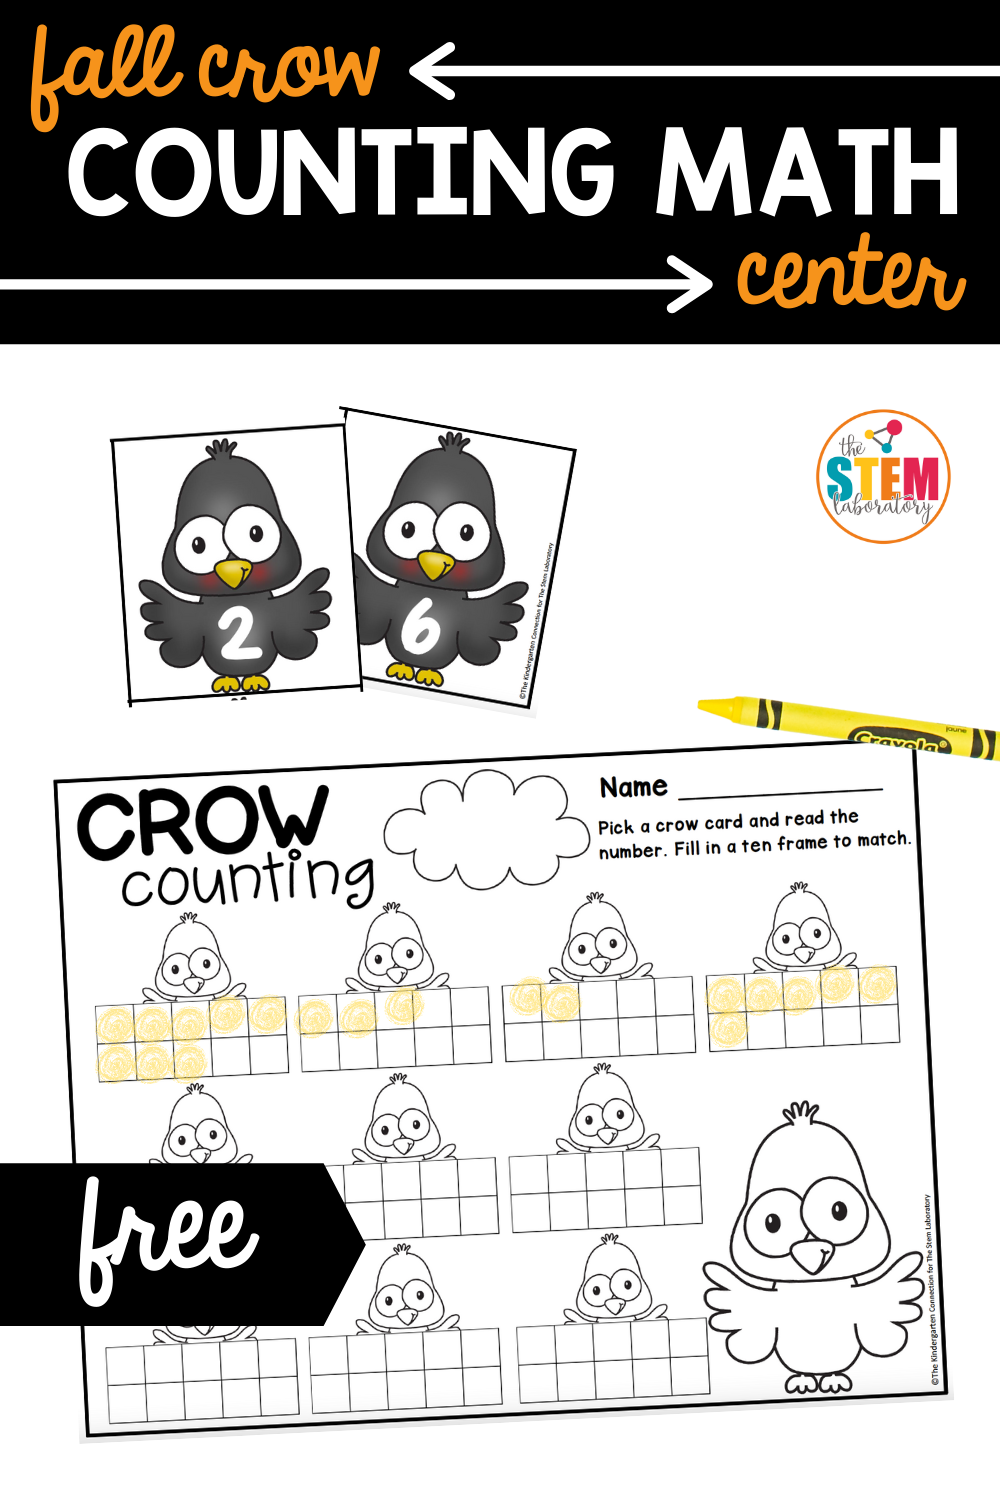 Fall Crow Counting Math Center